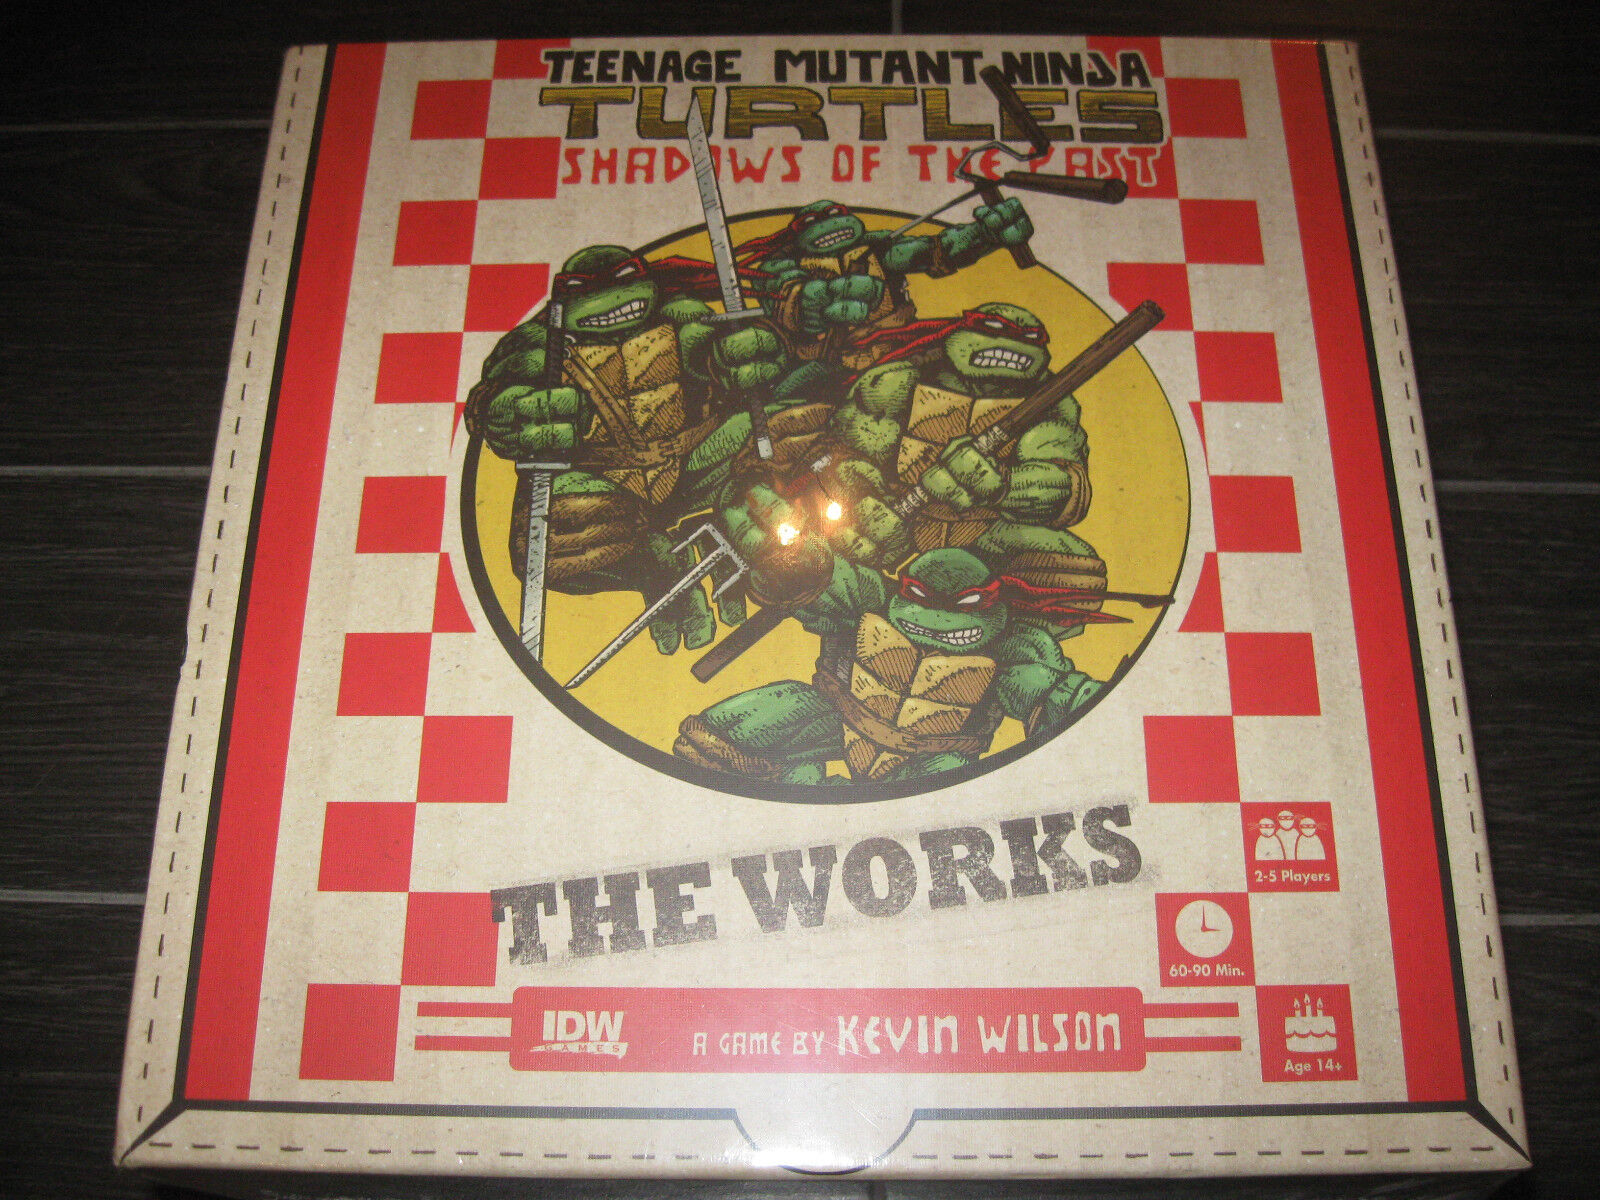 Teenage Mutant Ninja Turtles Teenage Mutant Ninja Turtles Shadows of Past The Works pédale de démarrage Gage